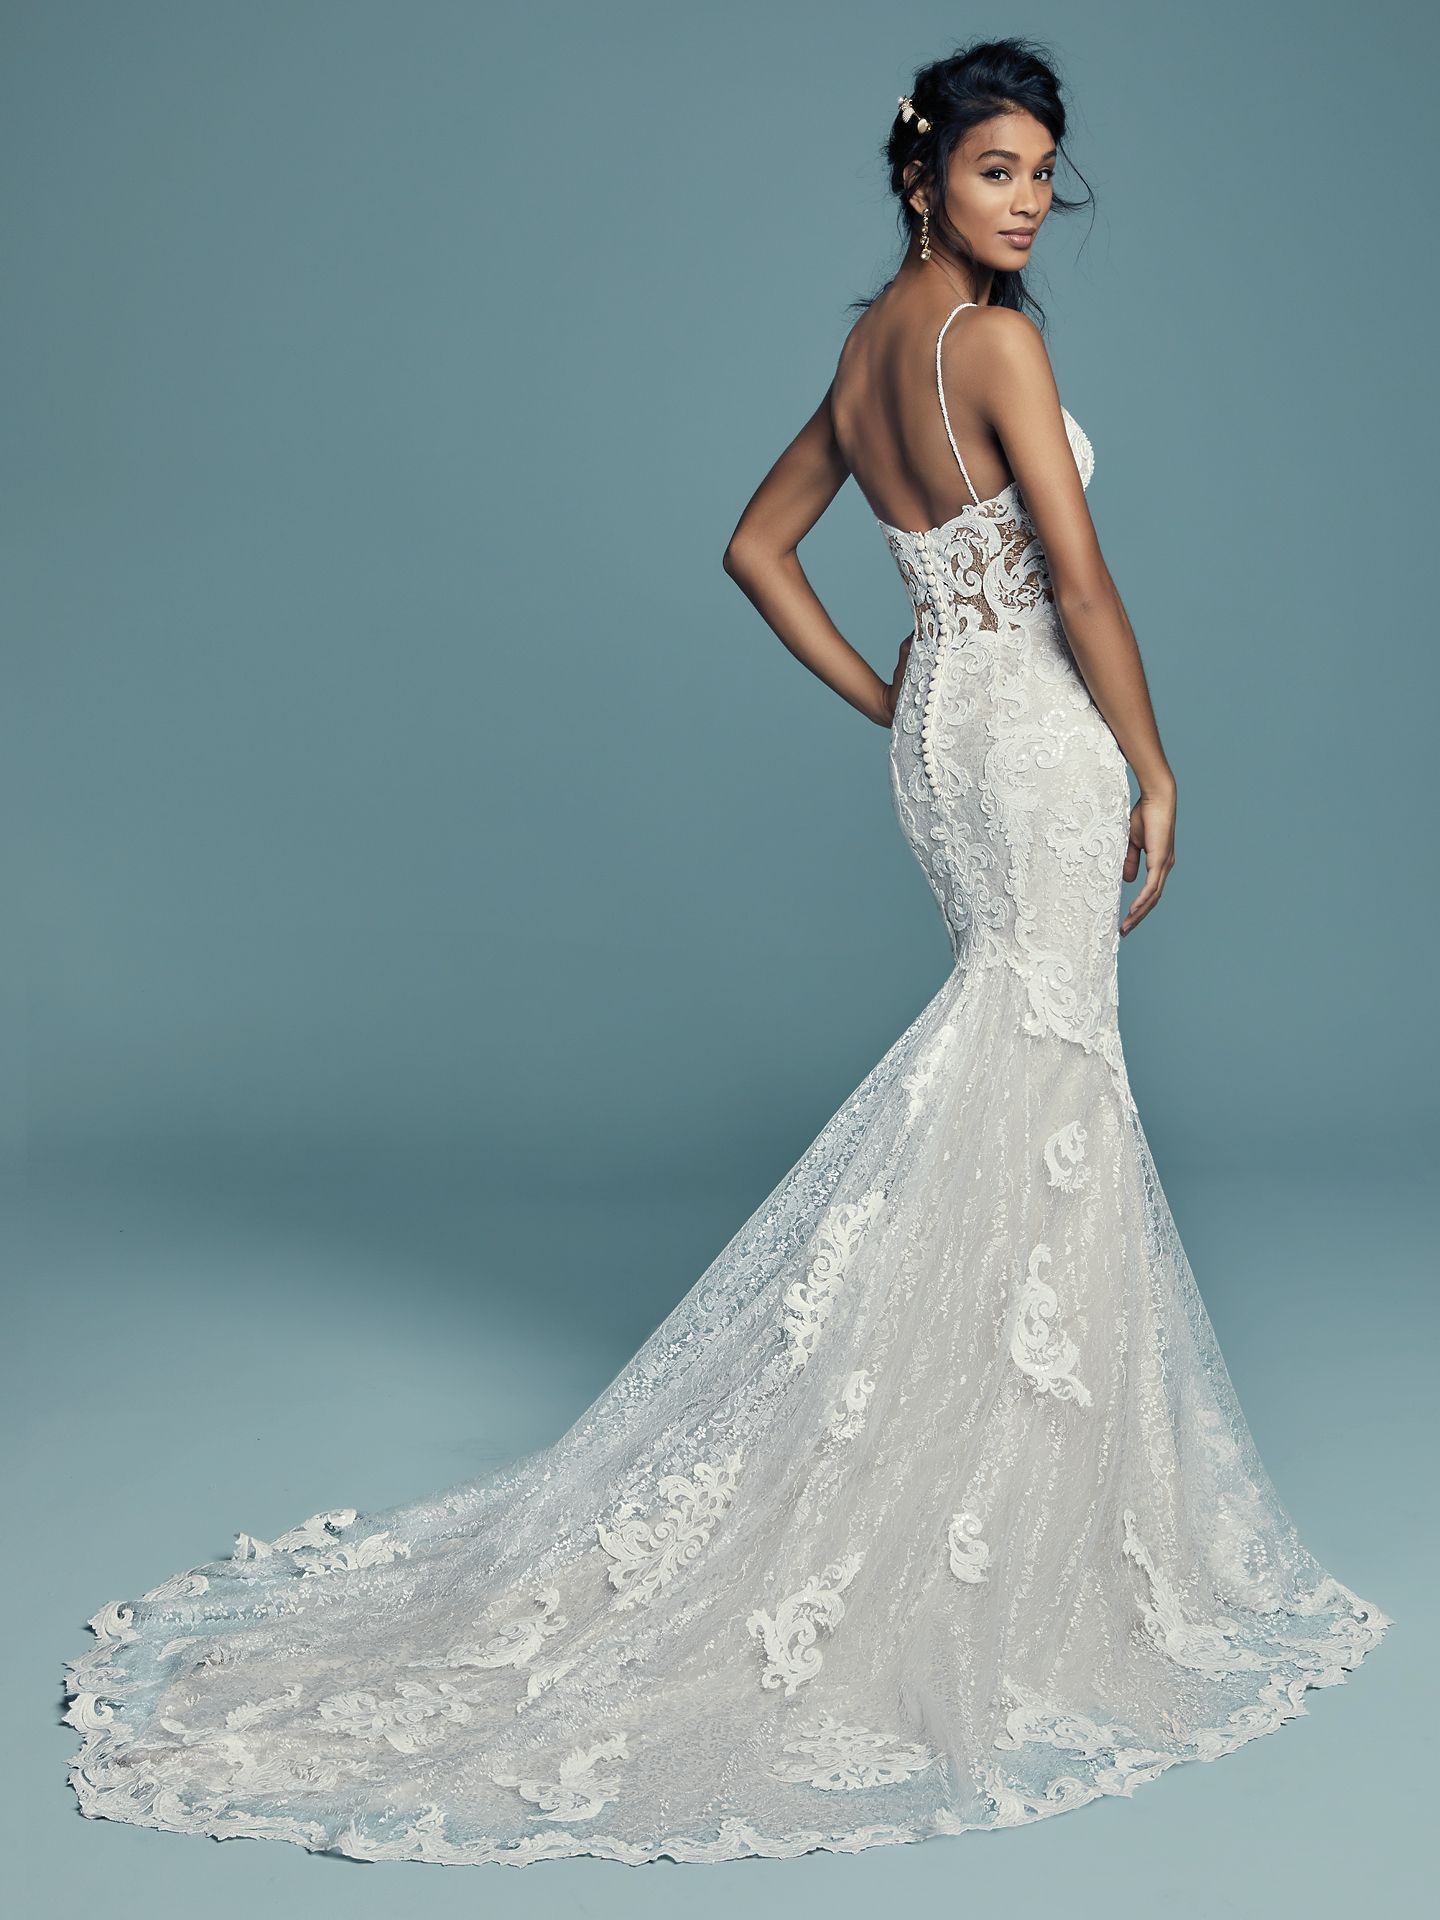 3ab51fab1d Tuscany Lynette by  MaggieSottero. Shimmering lace motifs waltz over  allover lace in this romantic sheath wedding dress